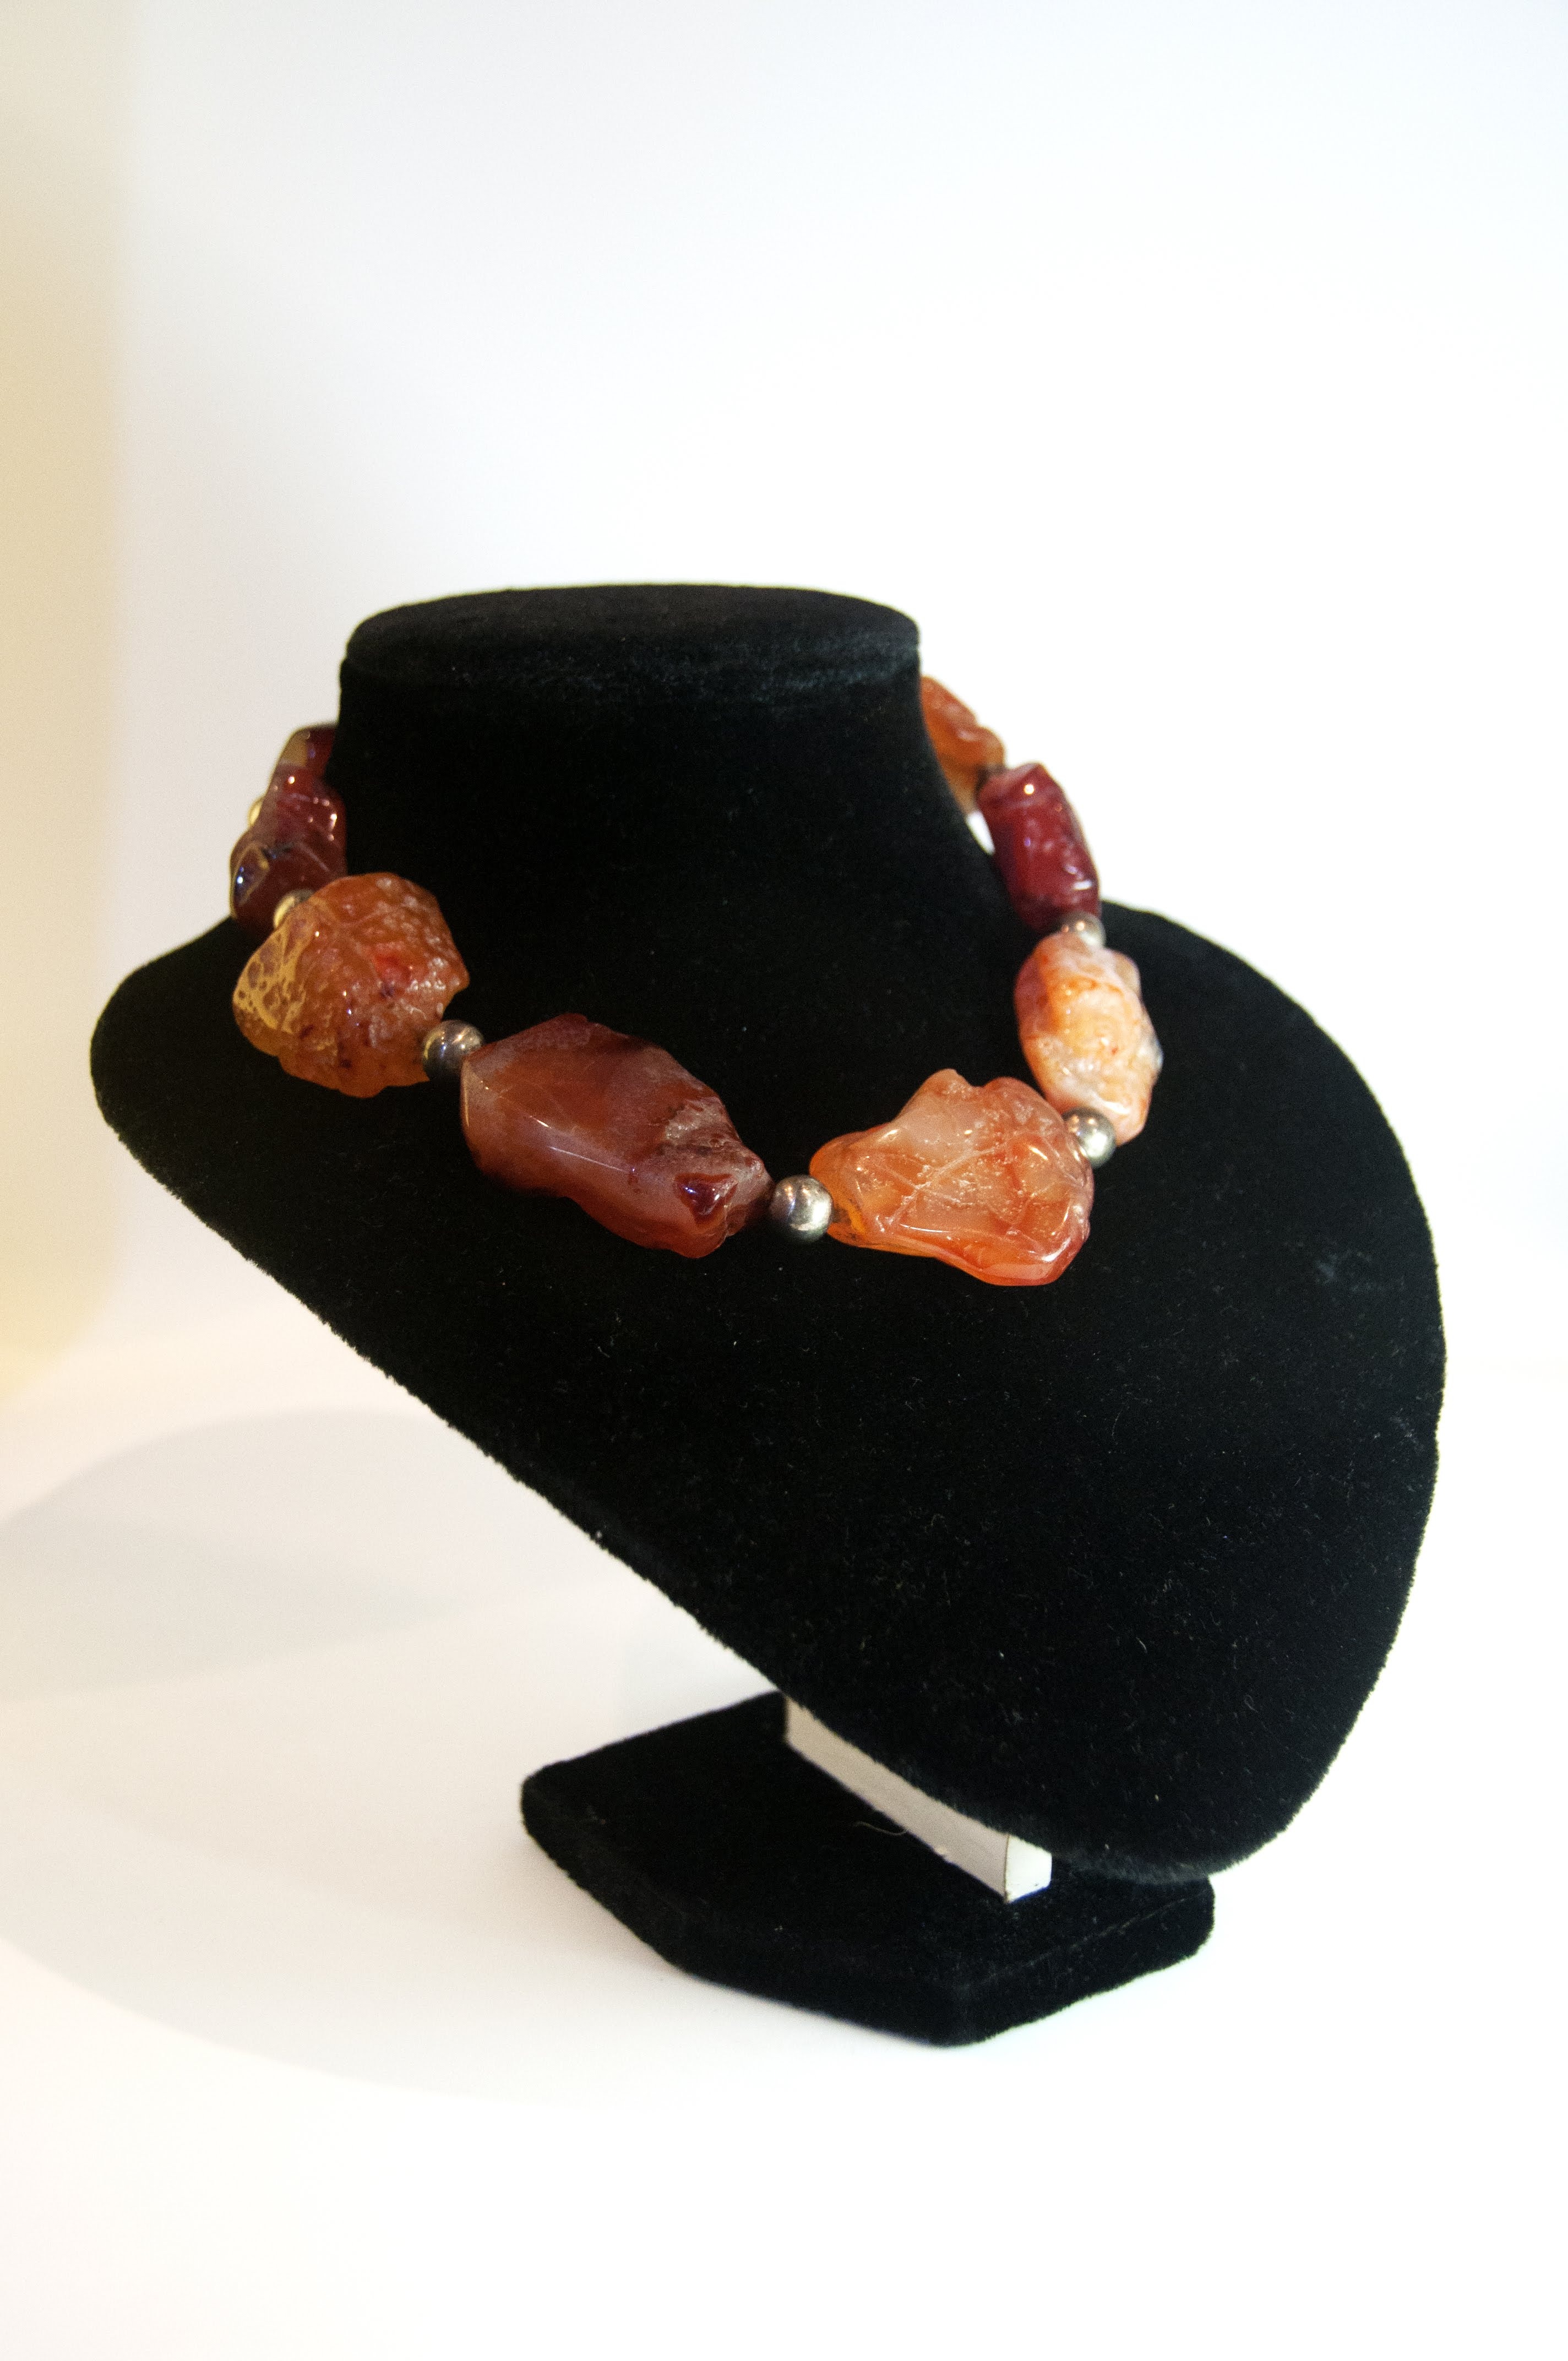 Jewelry Necklace Choker Orange Agate Nuggets/Silver Beads 15D 43.7g